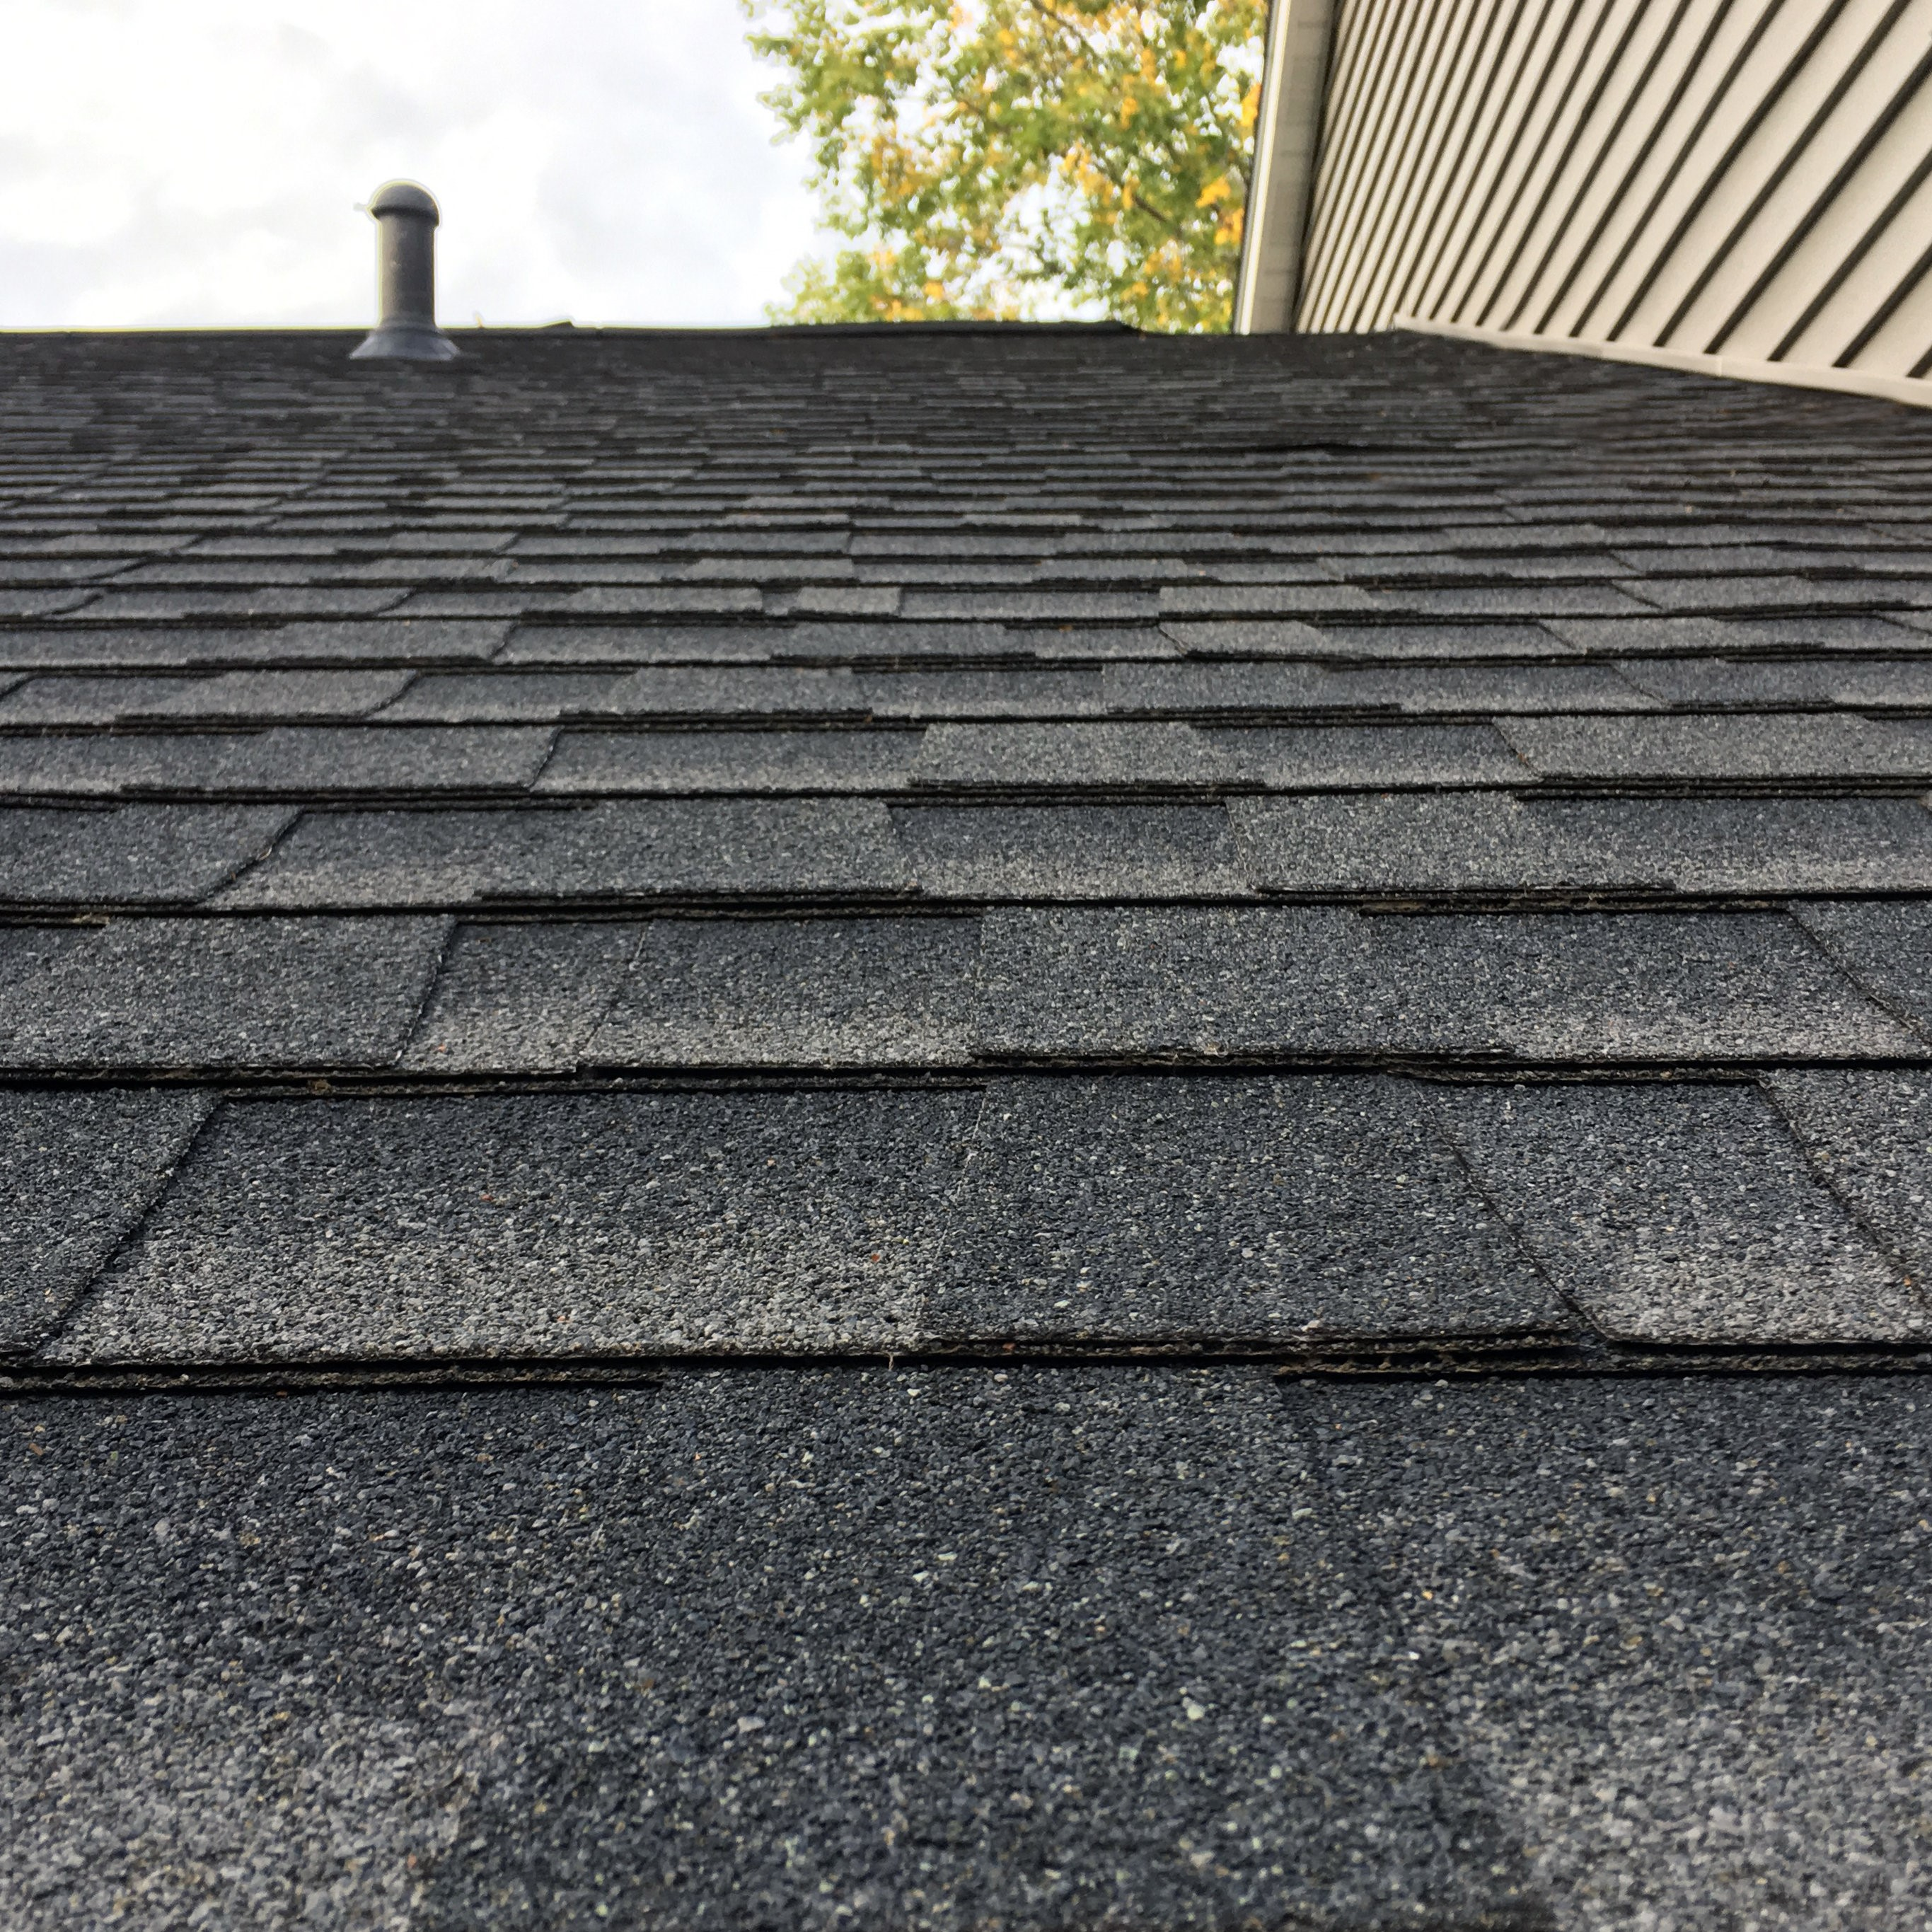 A section of perfect asphalt shingles on a rooftop.